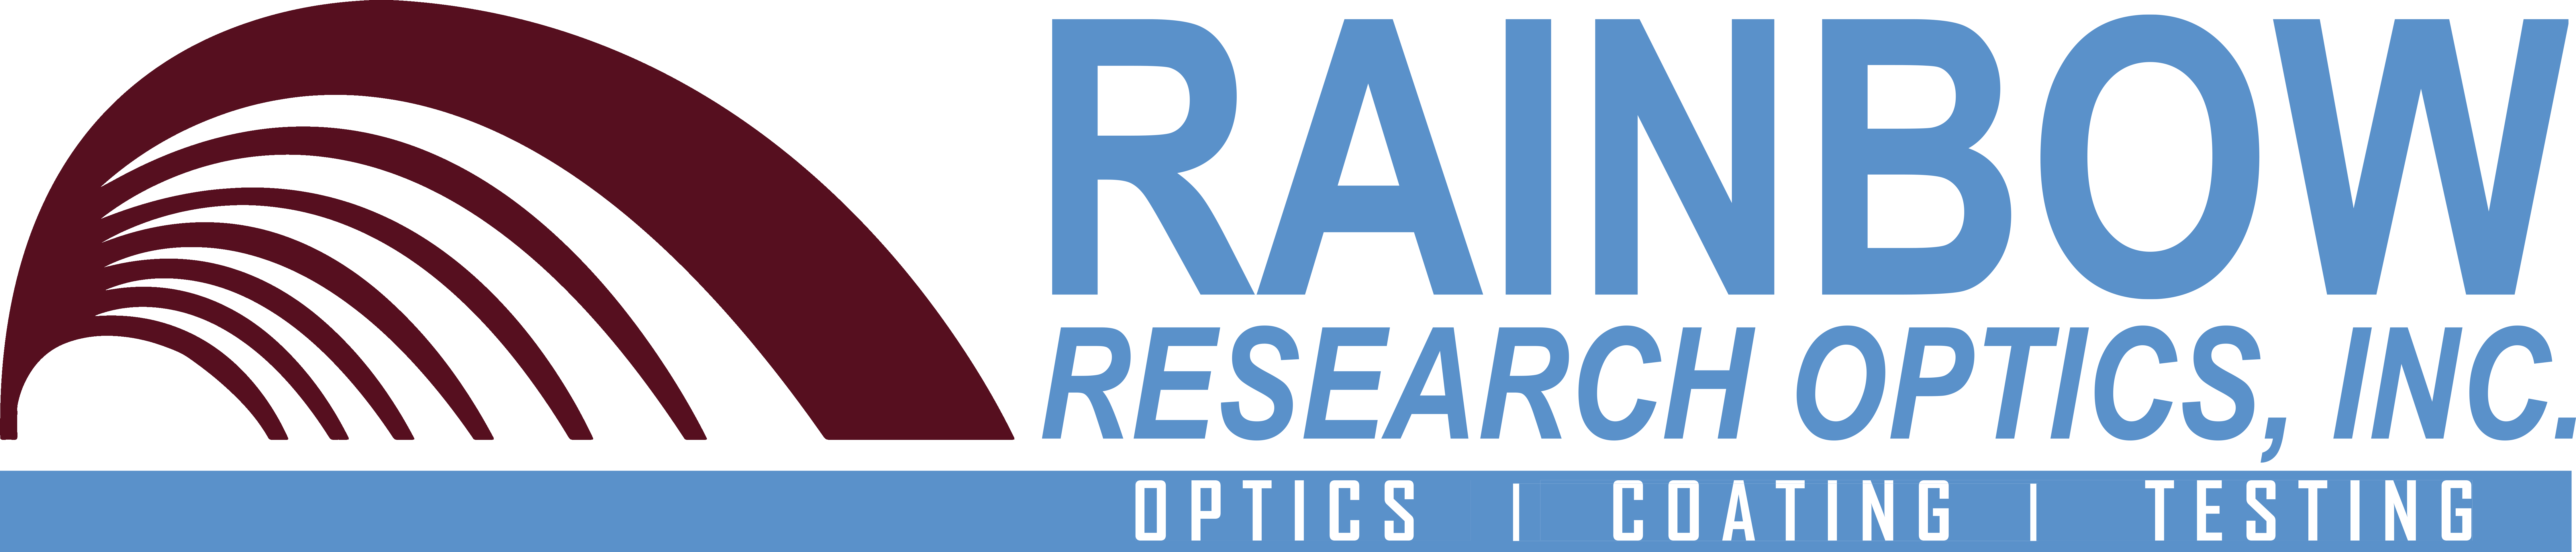 Rainbow Research Optics